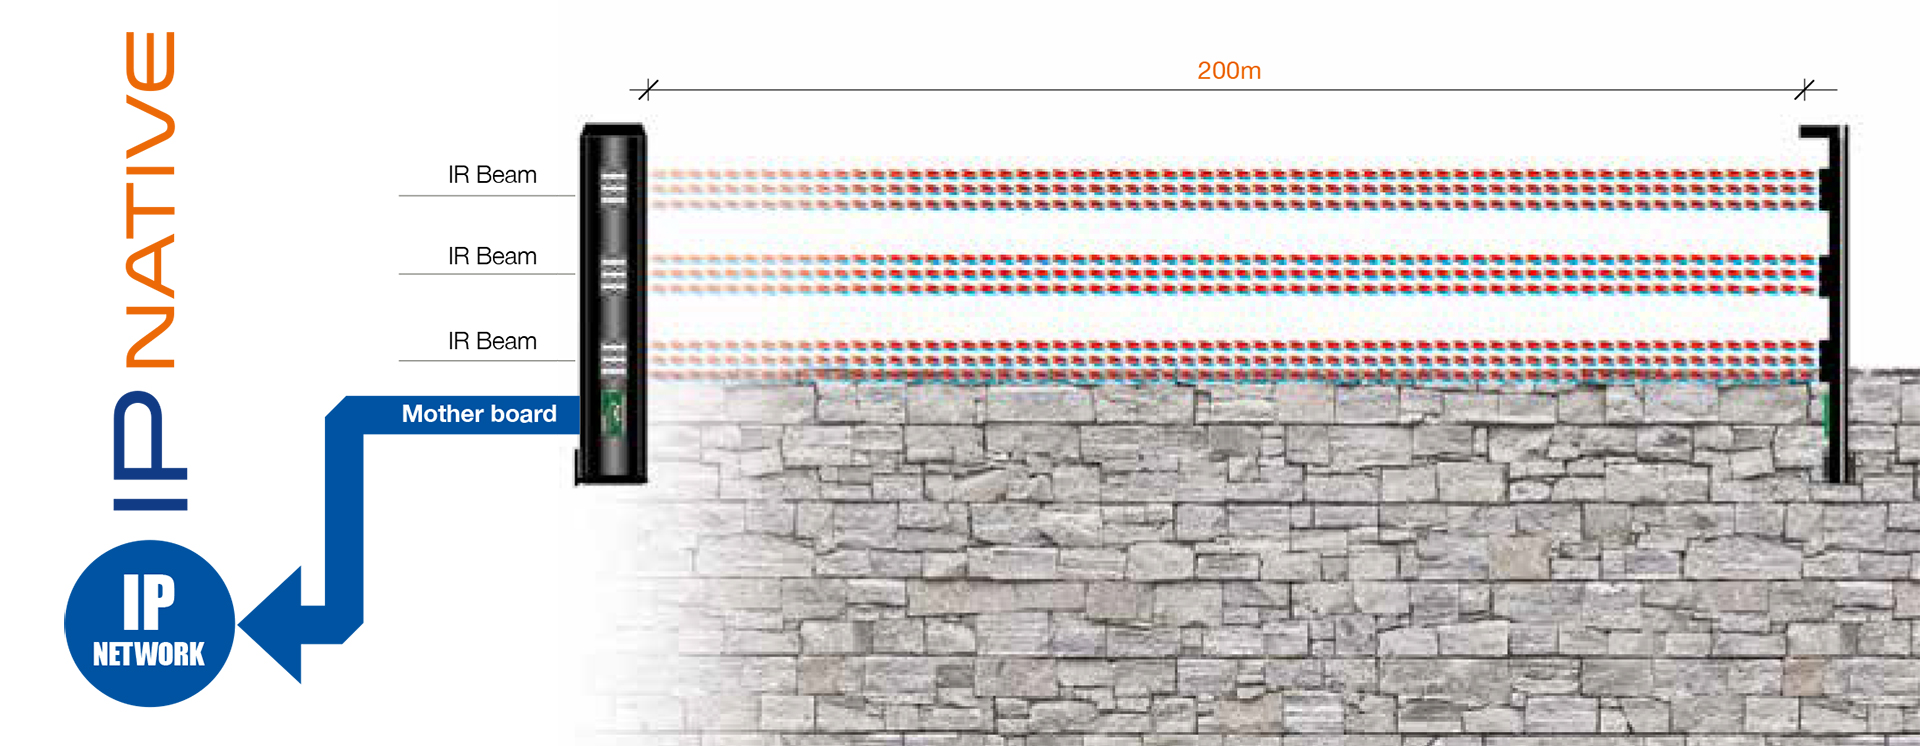 avantgarde-wm ir beam barrier for wall mounting applications